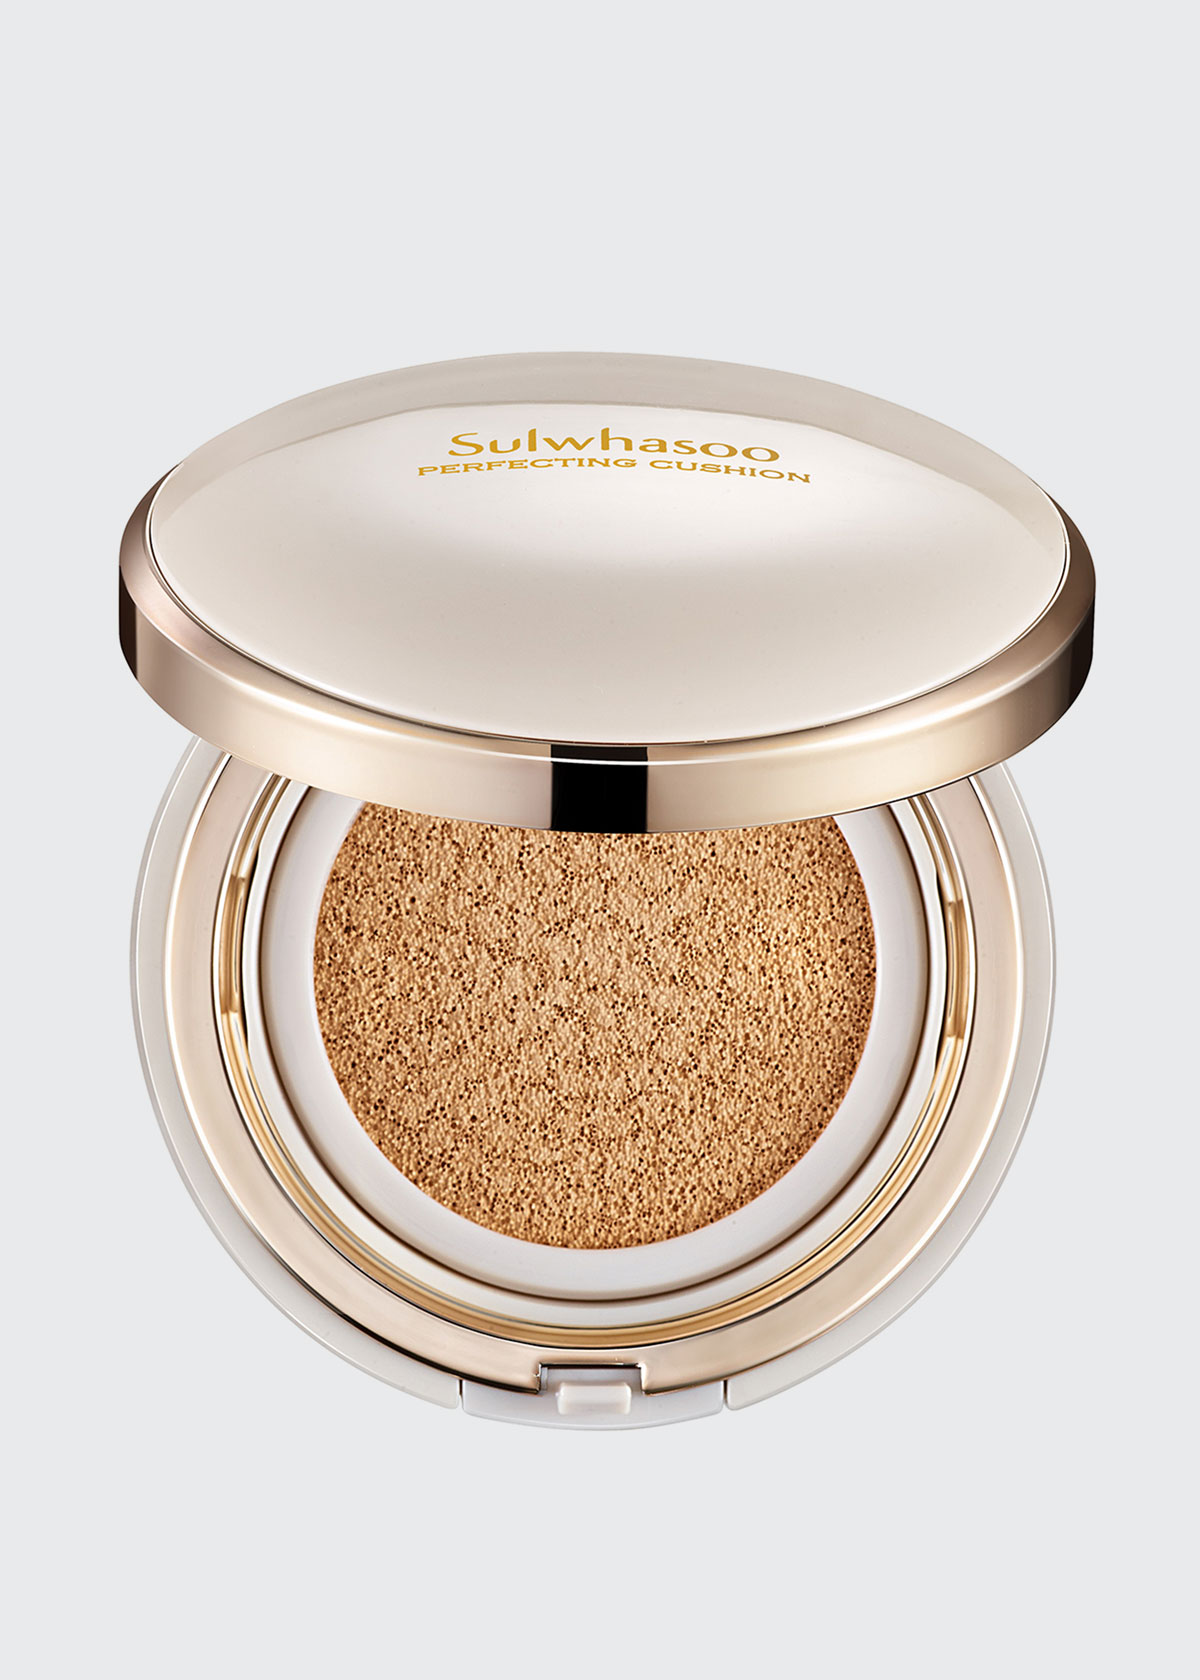 'Perfecting Cushion' Foundation Compact - 23 Medium Beige, Shade 23